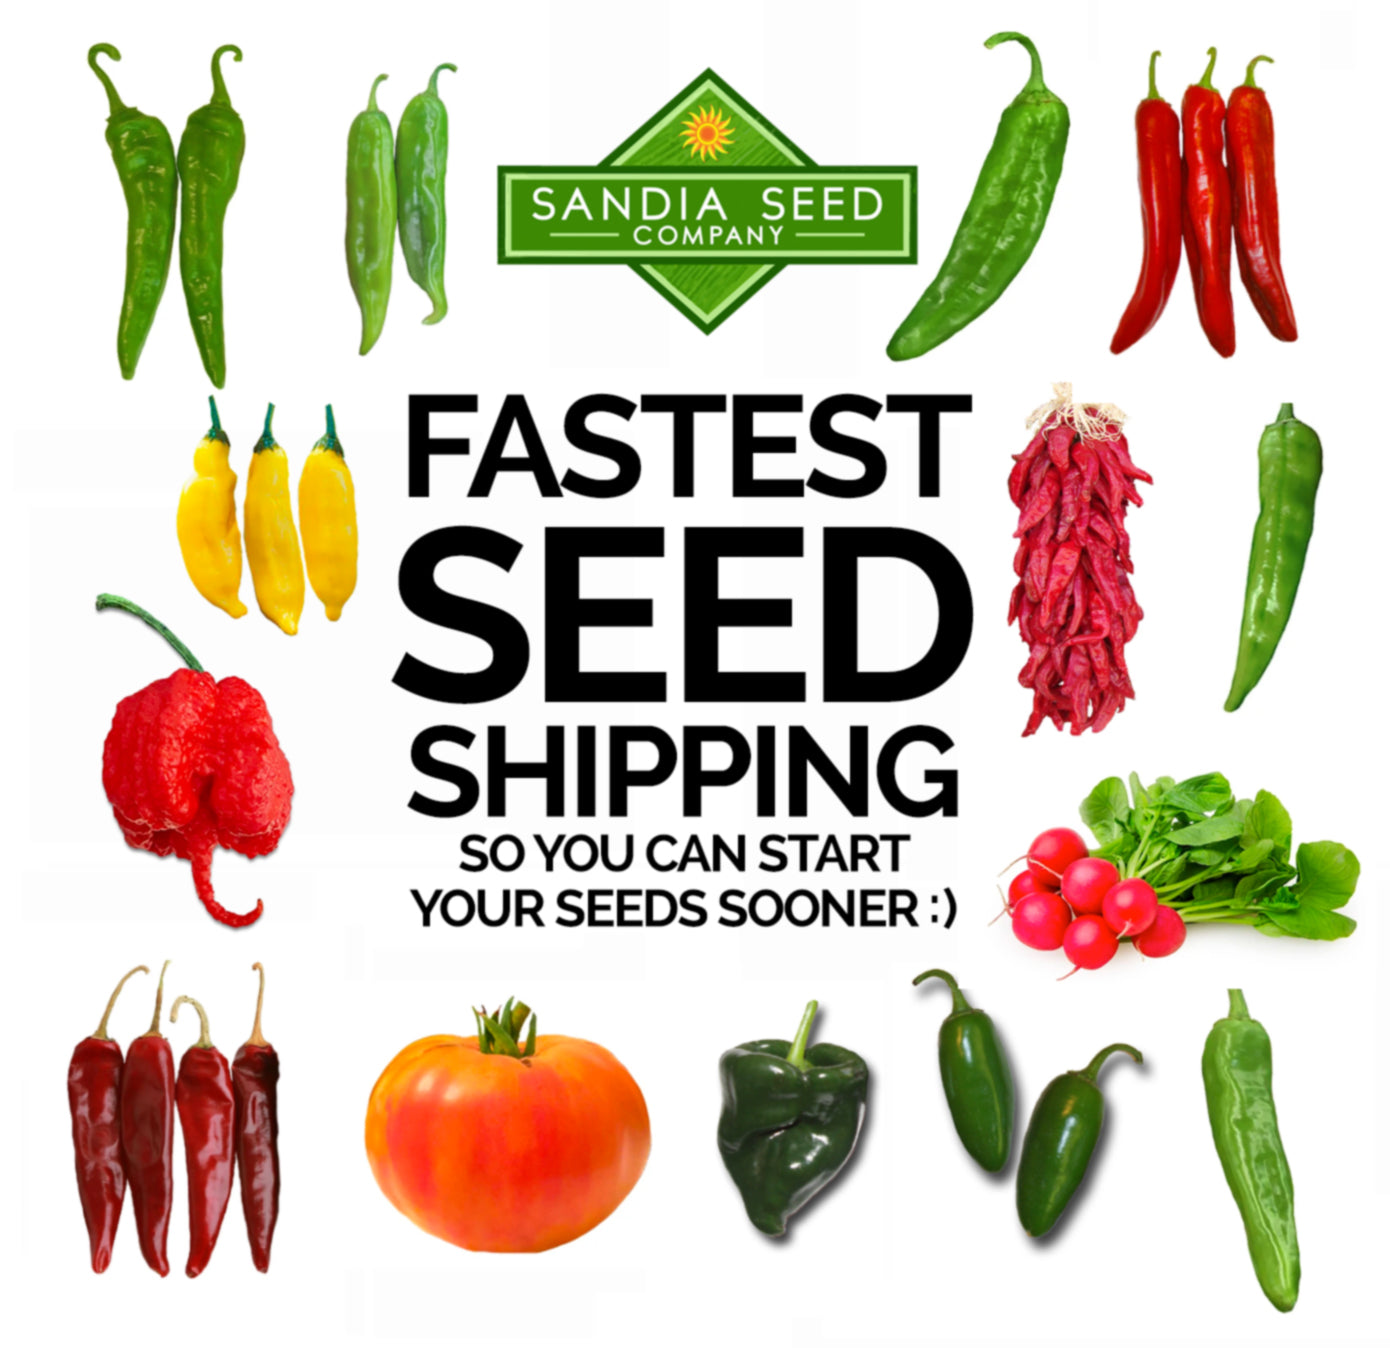 Fastest Seed Shipping